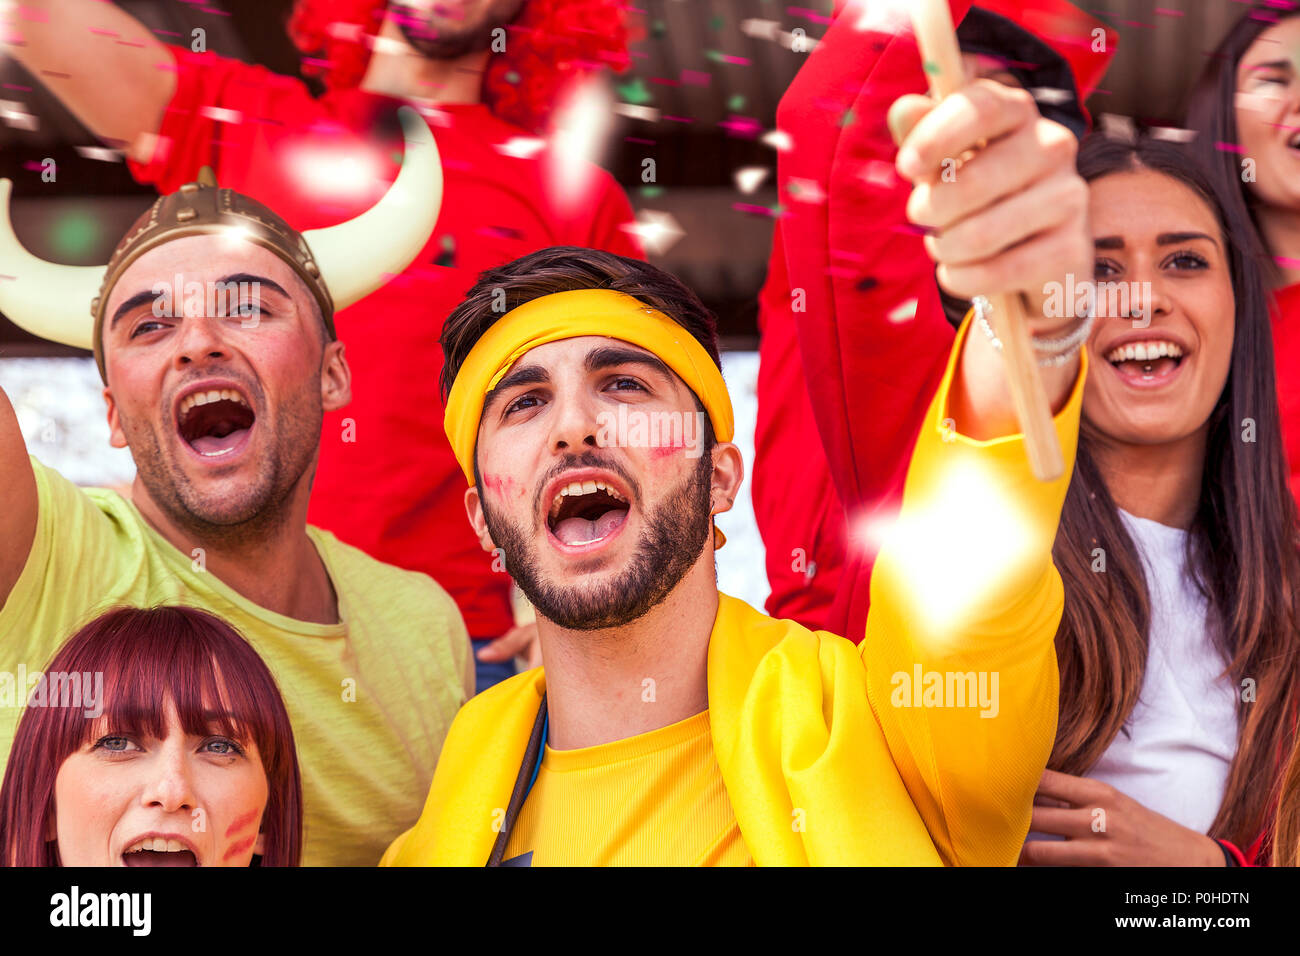 group of fans dressed in various colors watching a sports event in the stands of a stadium - Stock Image